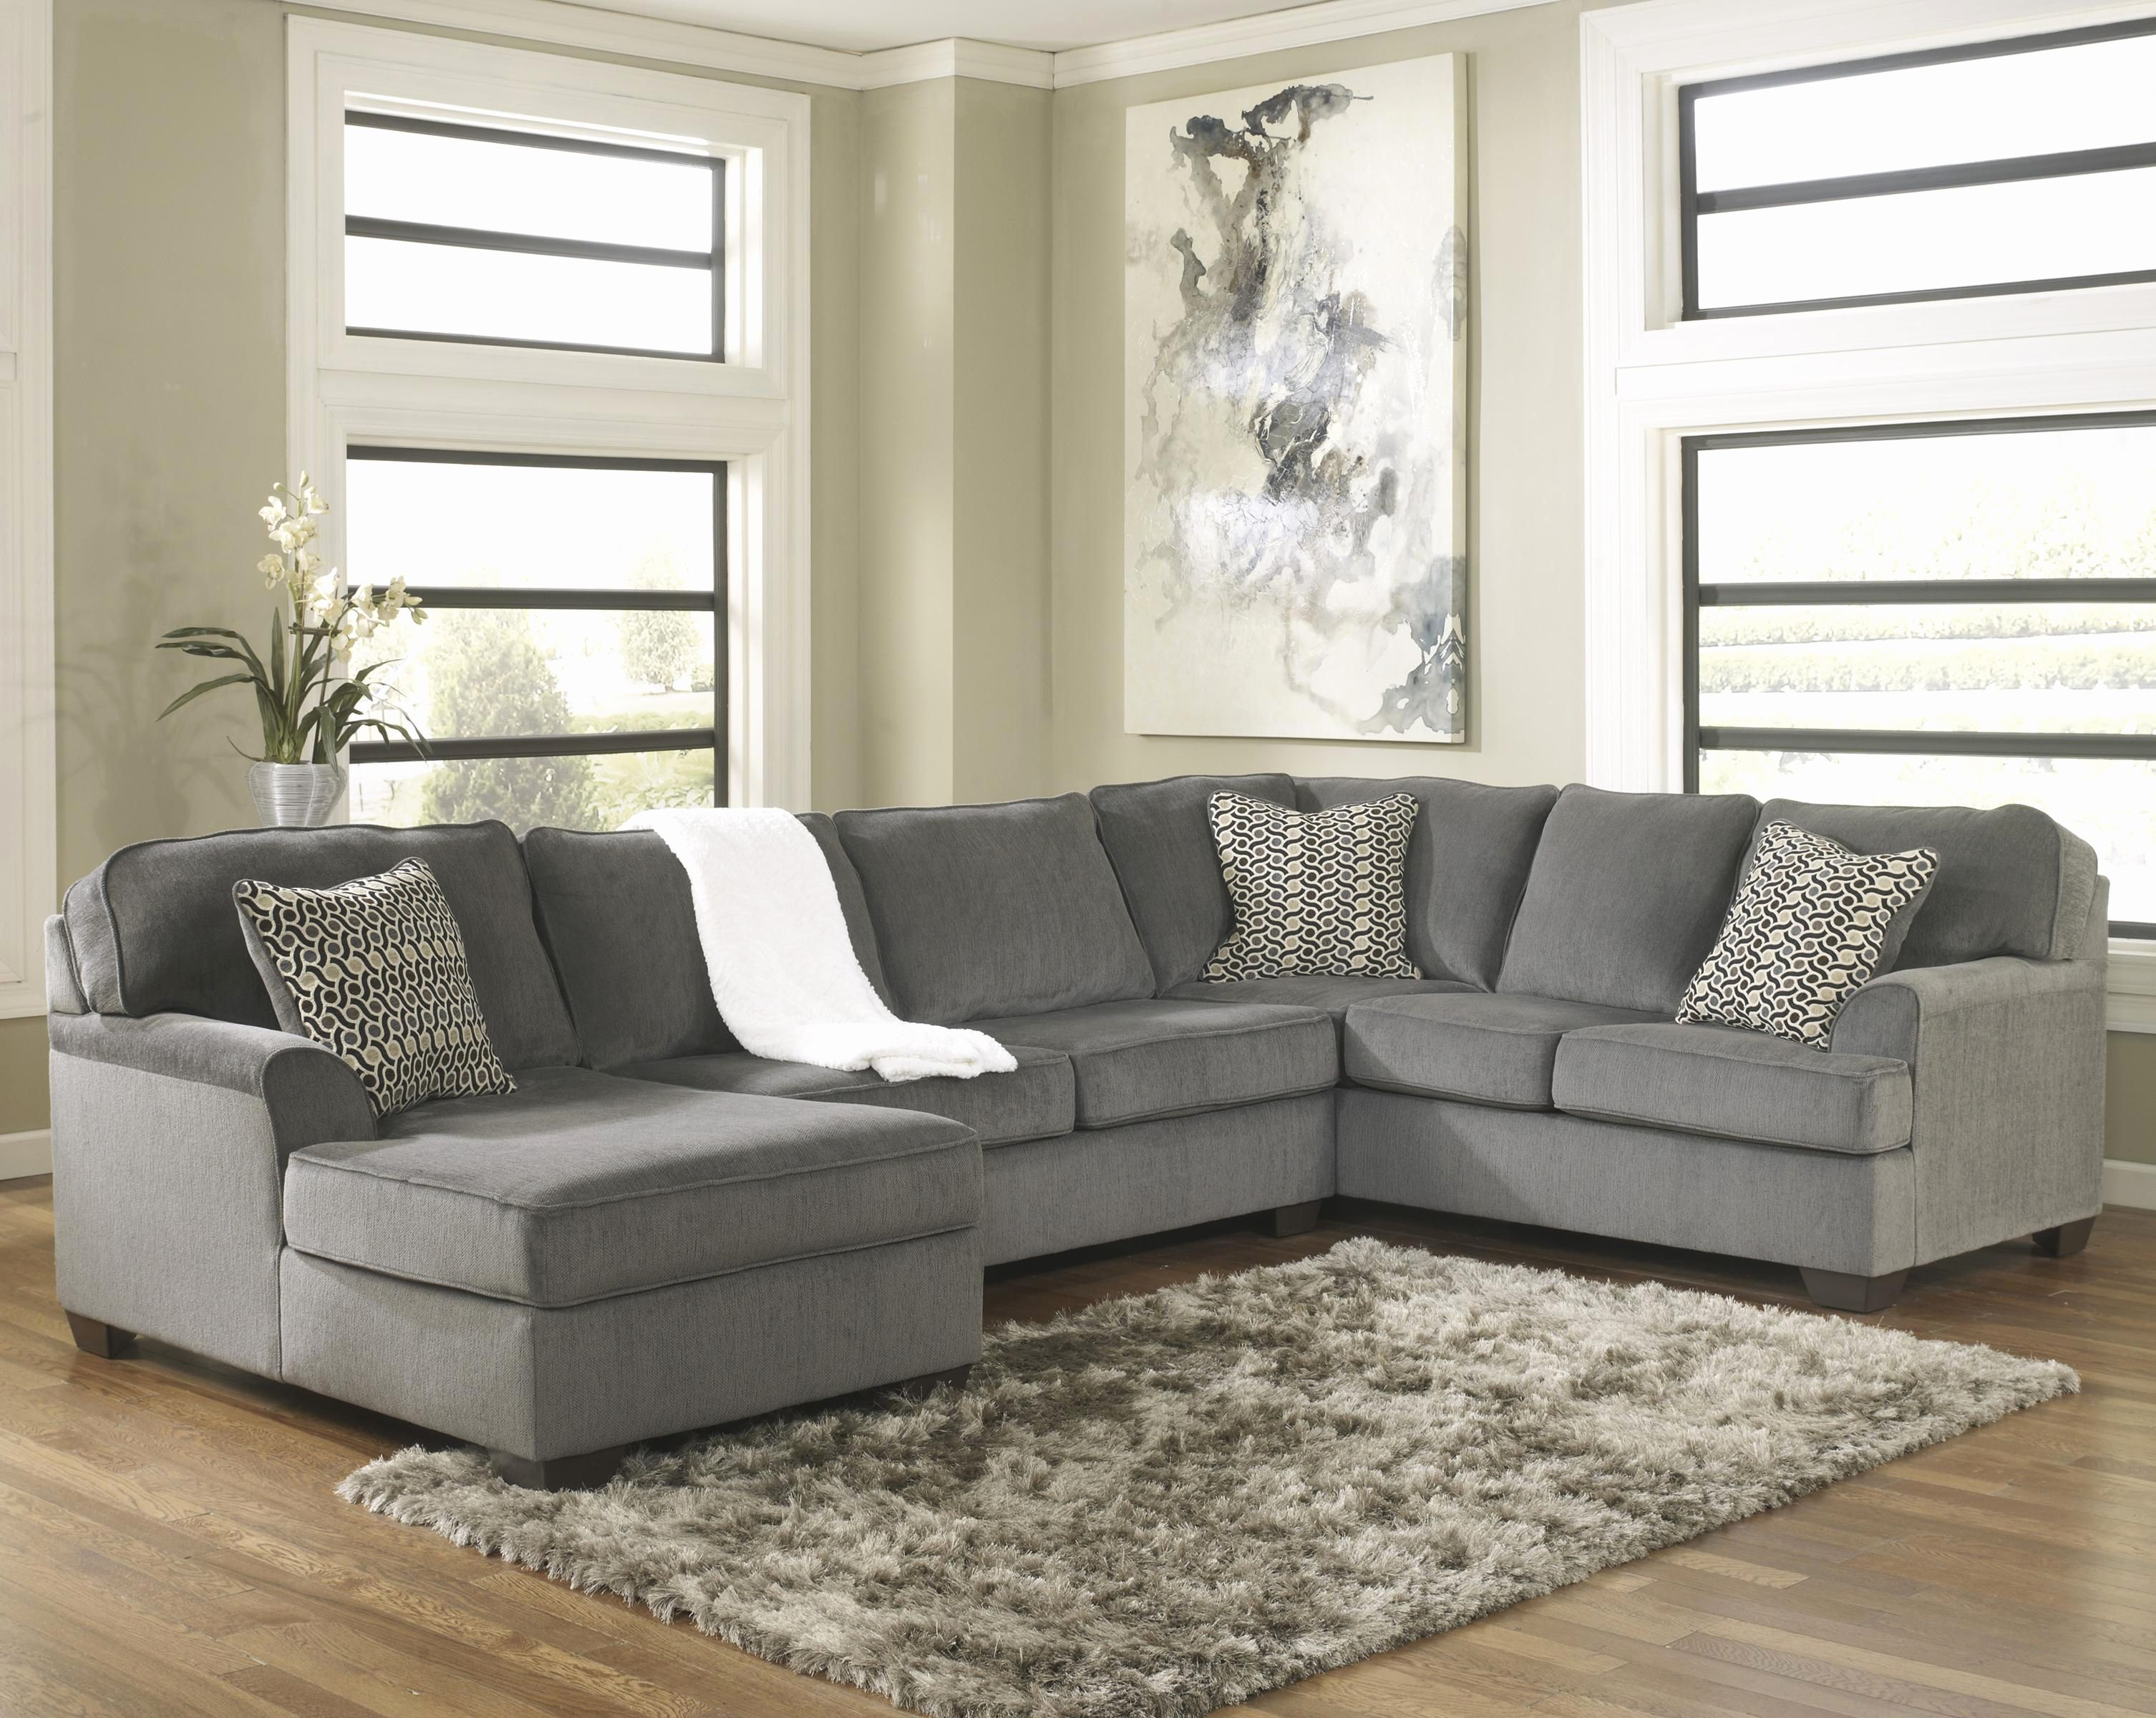 Amazing Contemporary Sectional Sofa With Chaise Shot Contemporary Sectional Sofa With Ashley Furniture Living Room Living Room Furniture Sale Ashley Furniture